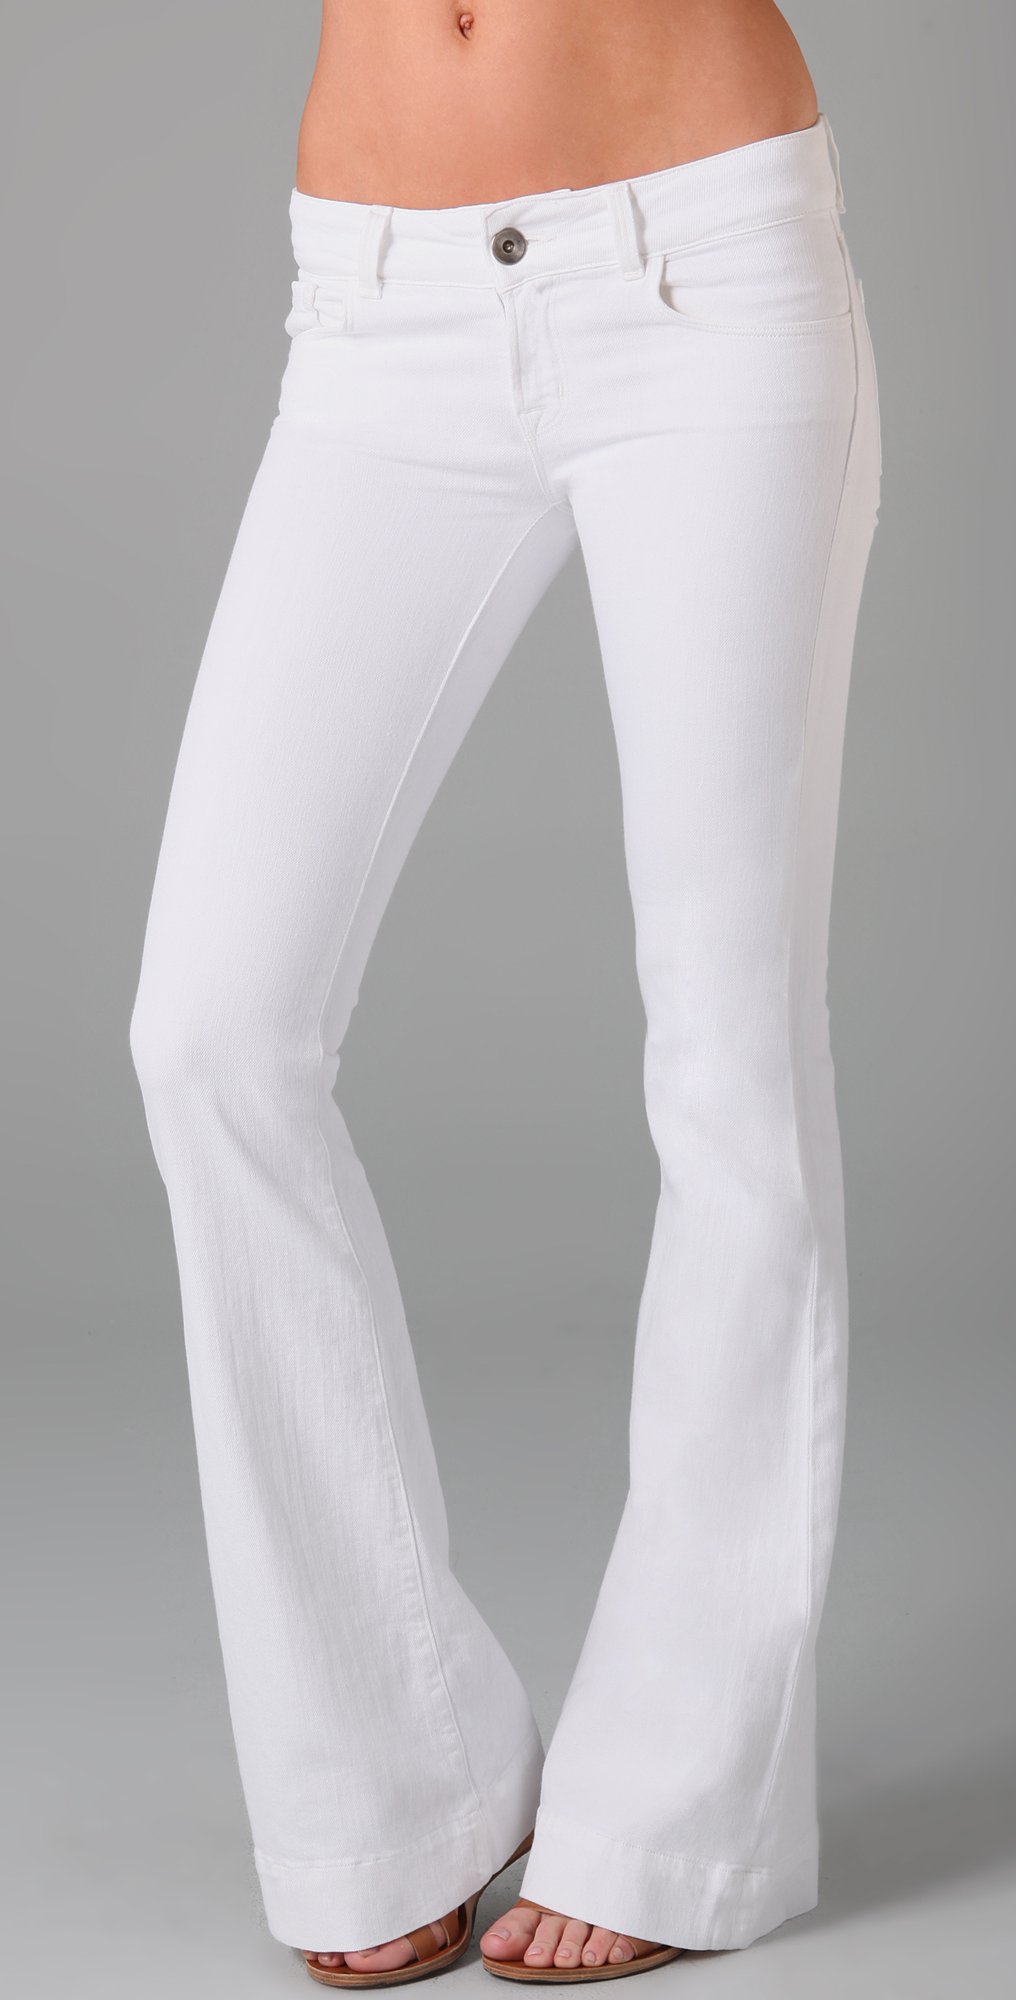 J Brand Love Story Bell Bottom Jeans | 15% off first app purchase ...